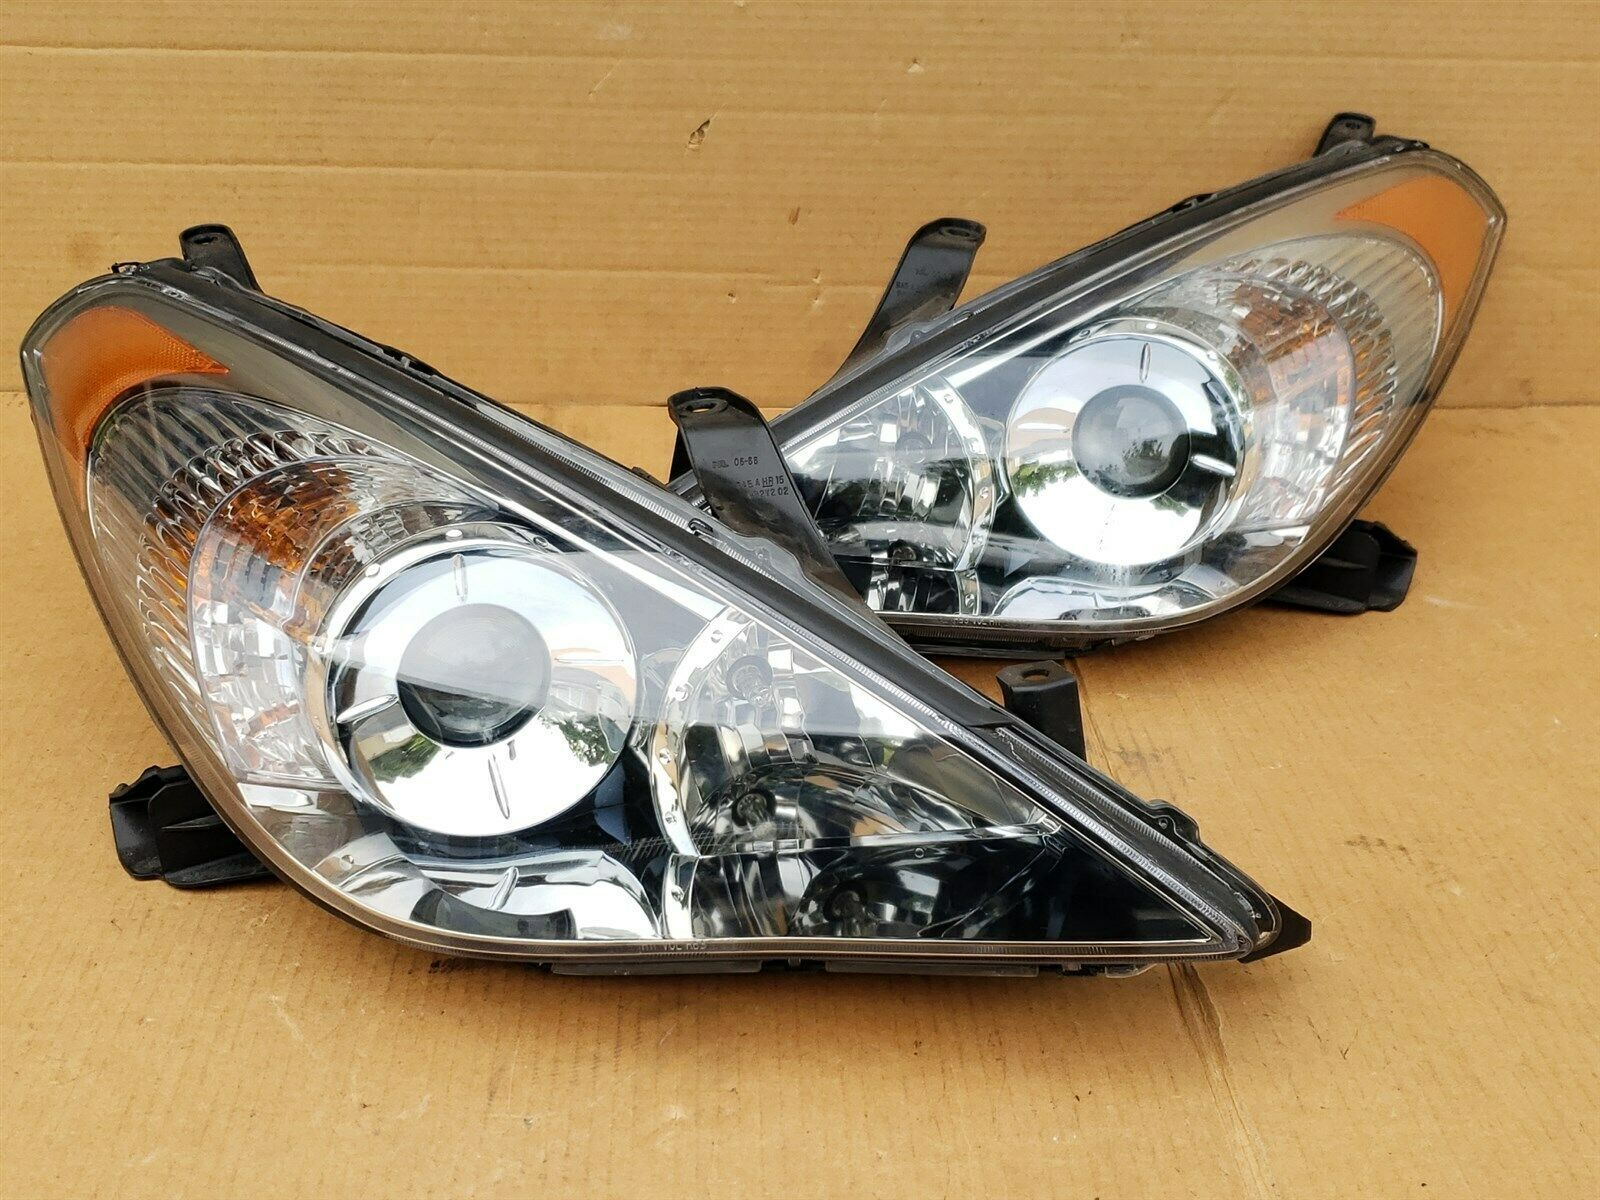 07-08 Toyota Solara OEM Halogen Headlight Lamp Matching Set Pair L&R - POLISHED